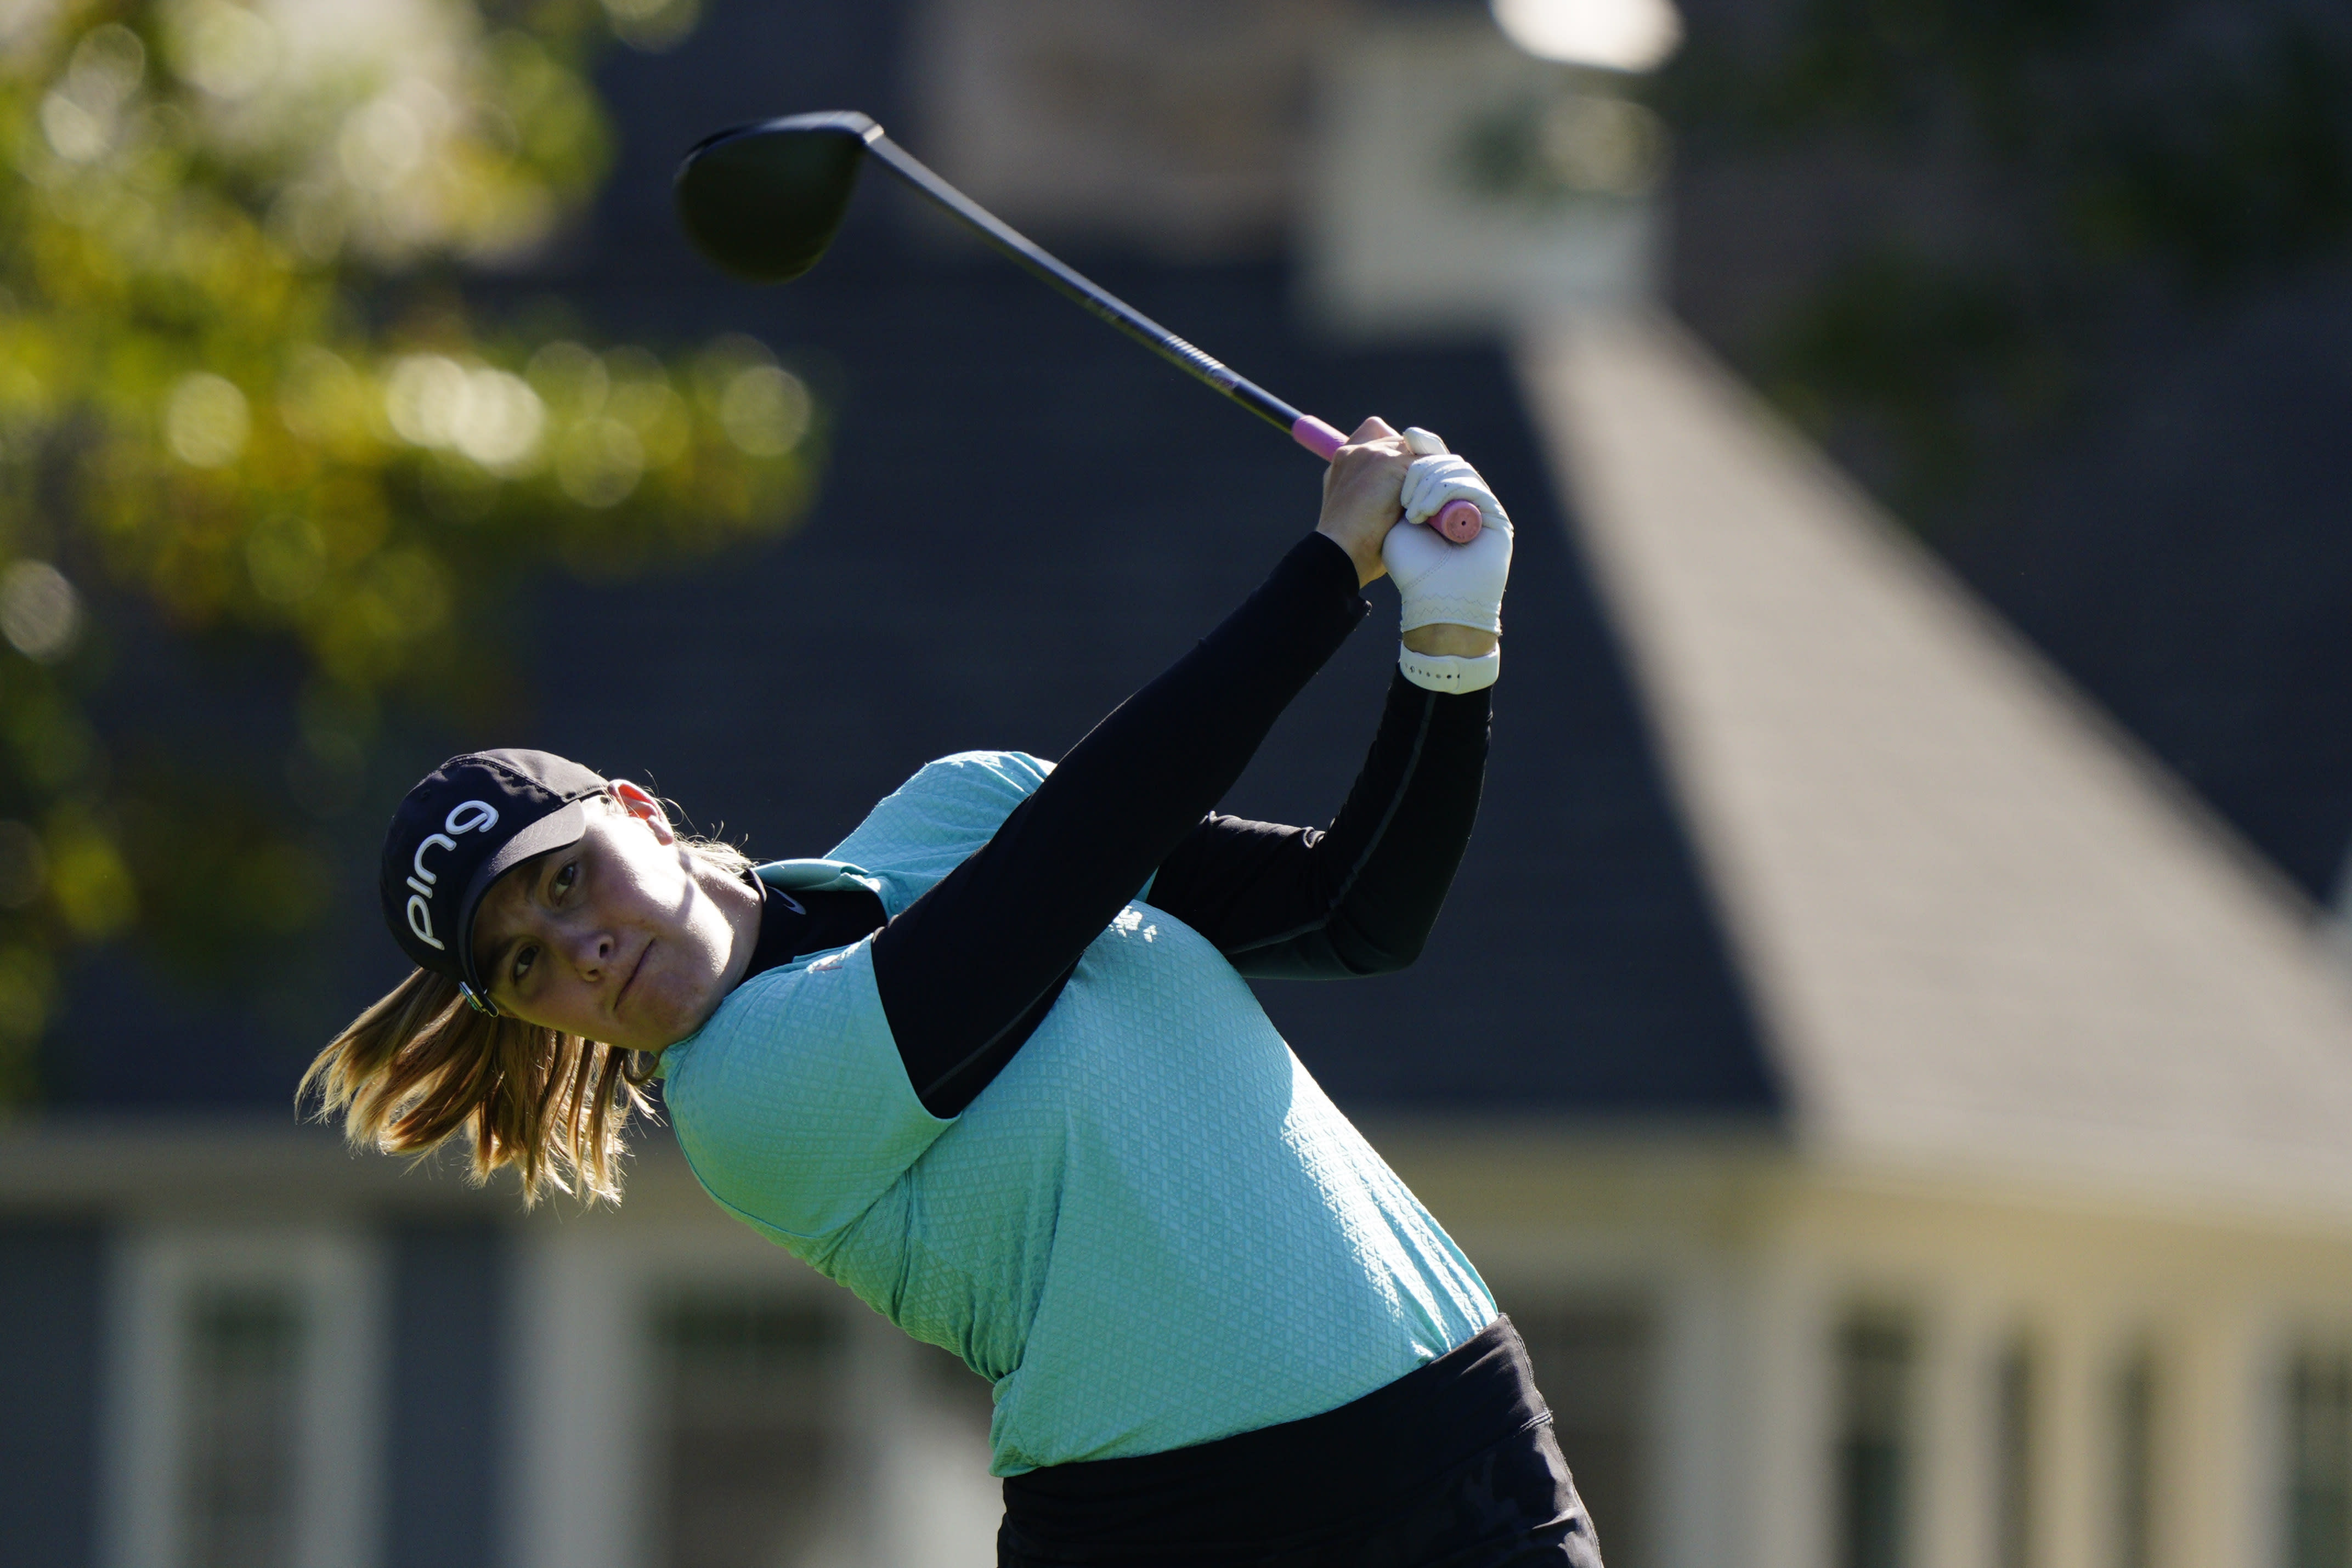 Jennifer Kupcho watches her tee shot on the seventh hole during the second round of the KPMG Women's PGA Championship golf tournament at the Aronimink Golf Club, Friday, Oct. 9, 2020, in Newtown Square, Pa. (AP Photo/Chris Szagola)